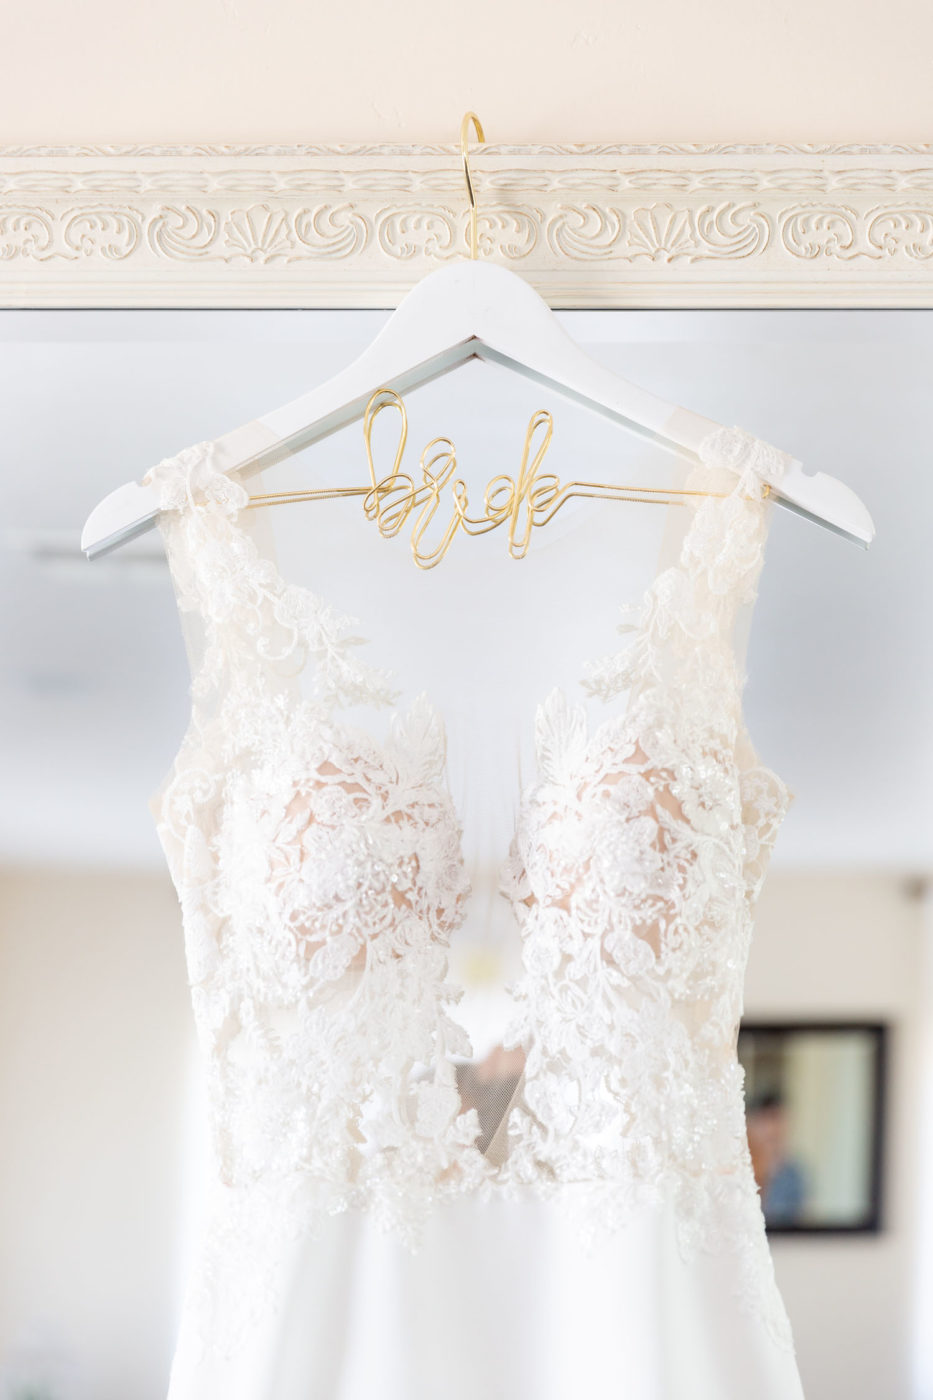 wedding dress in front of mirror with